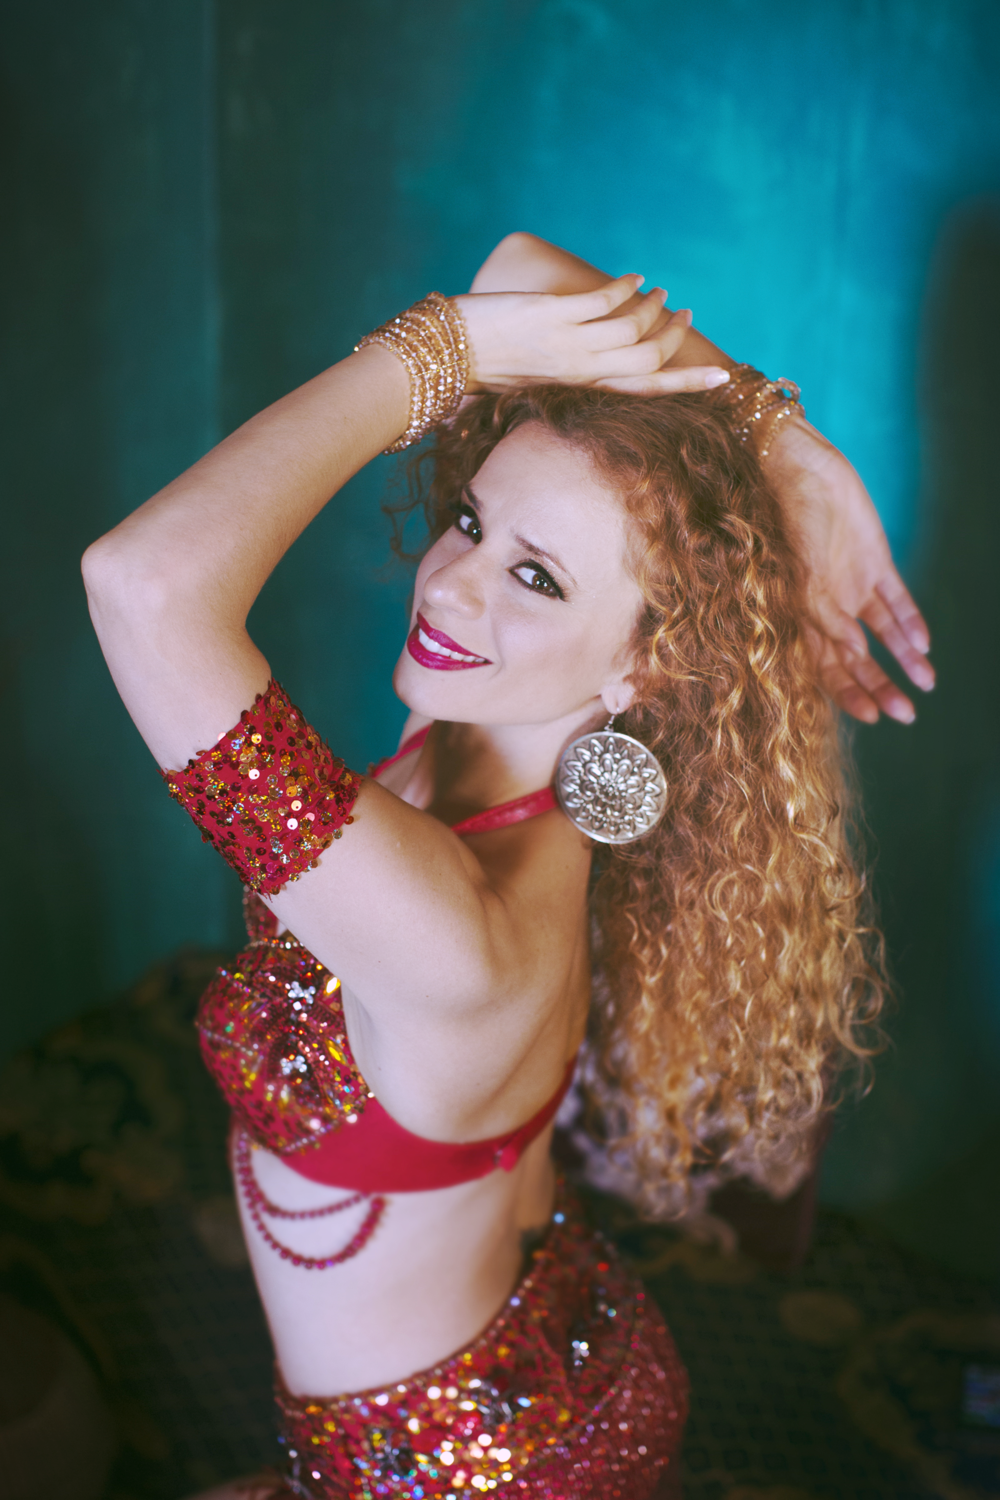 Belly dancing Melbourne, belly dance Melbourne, bellydance Melbourne, belly dancer weddings Melbourne